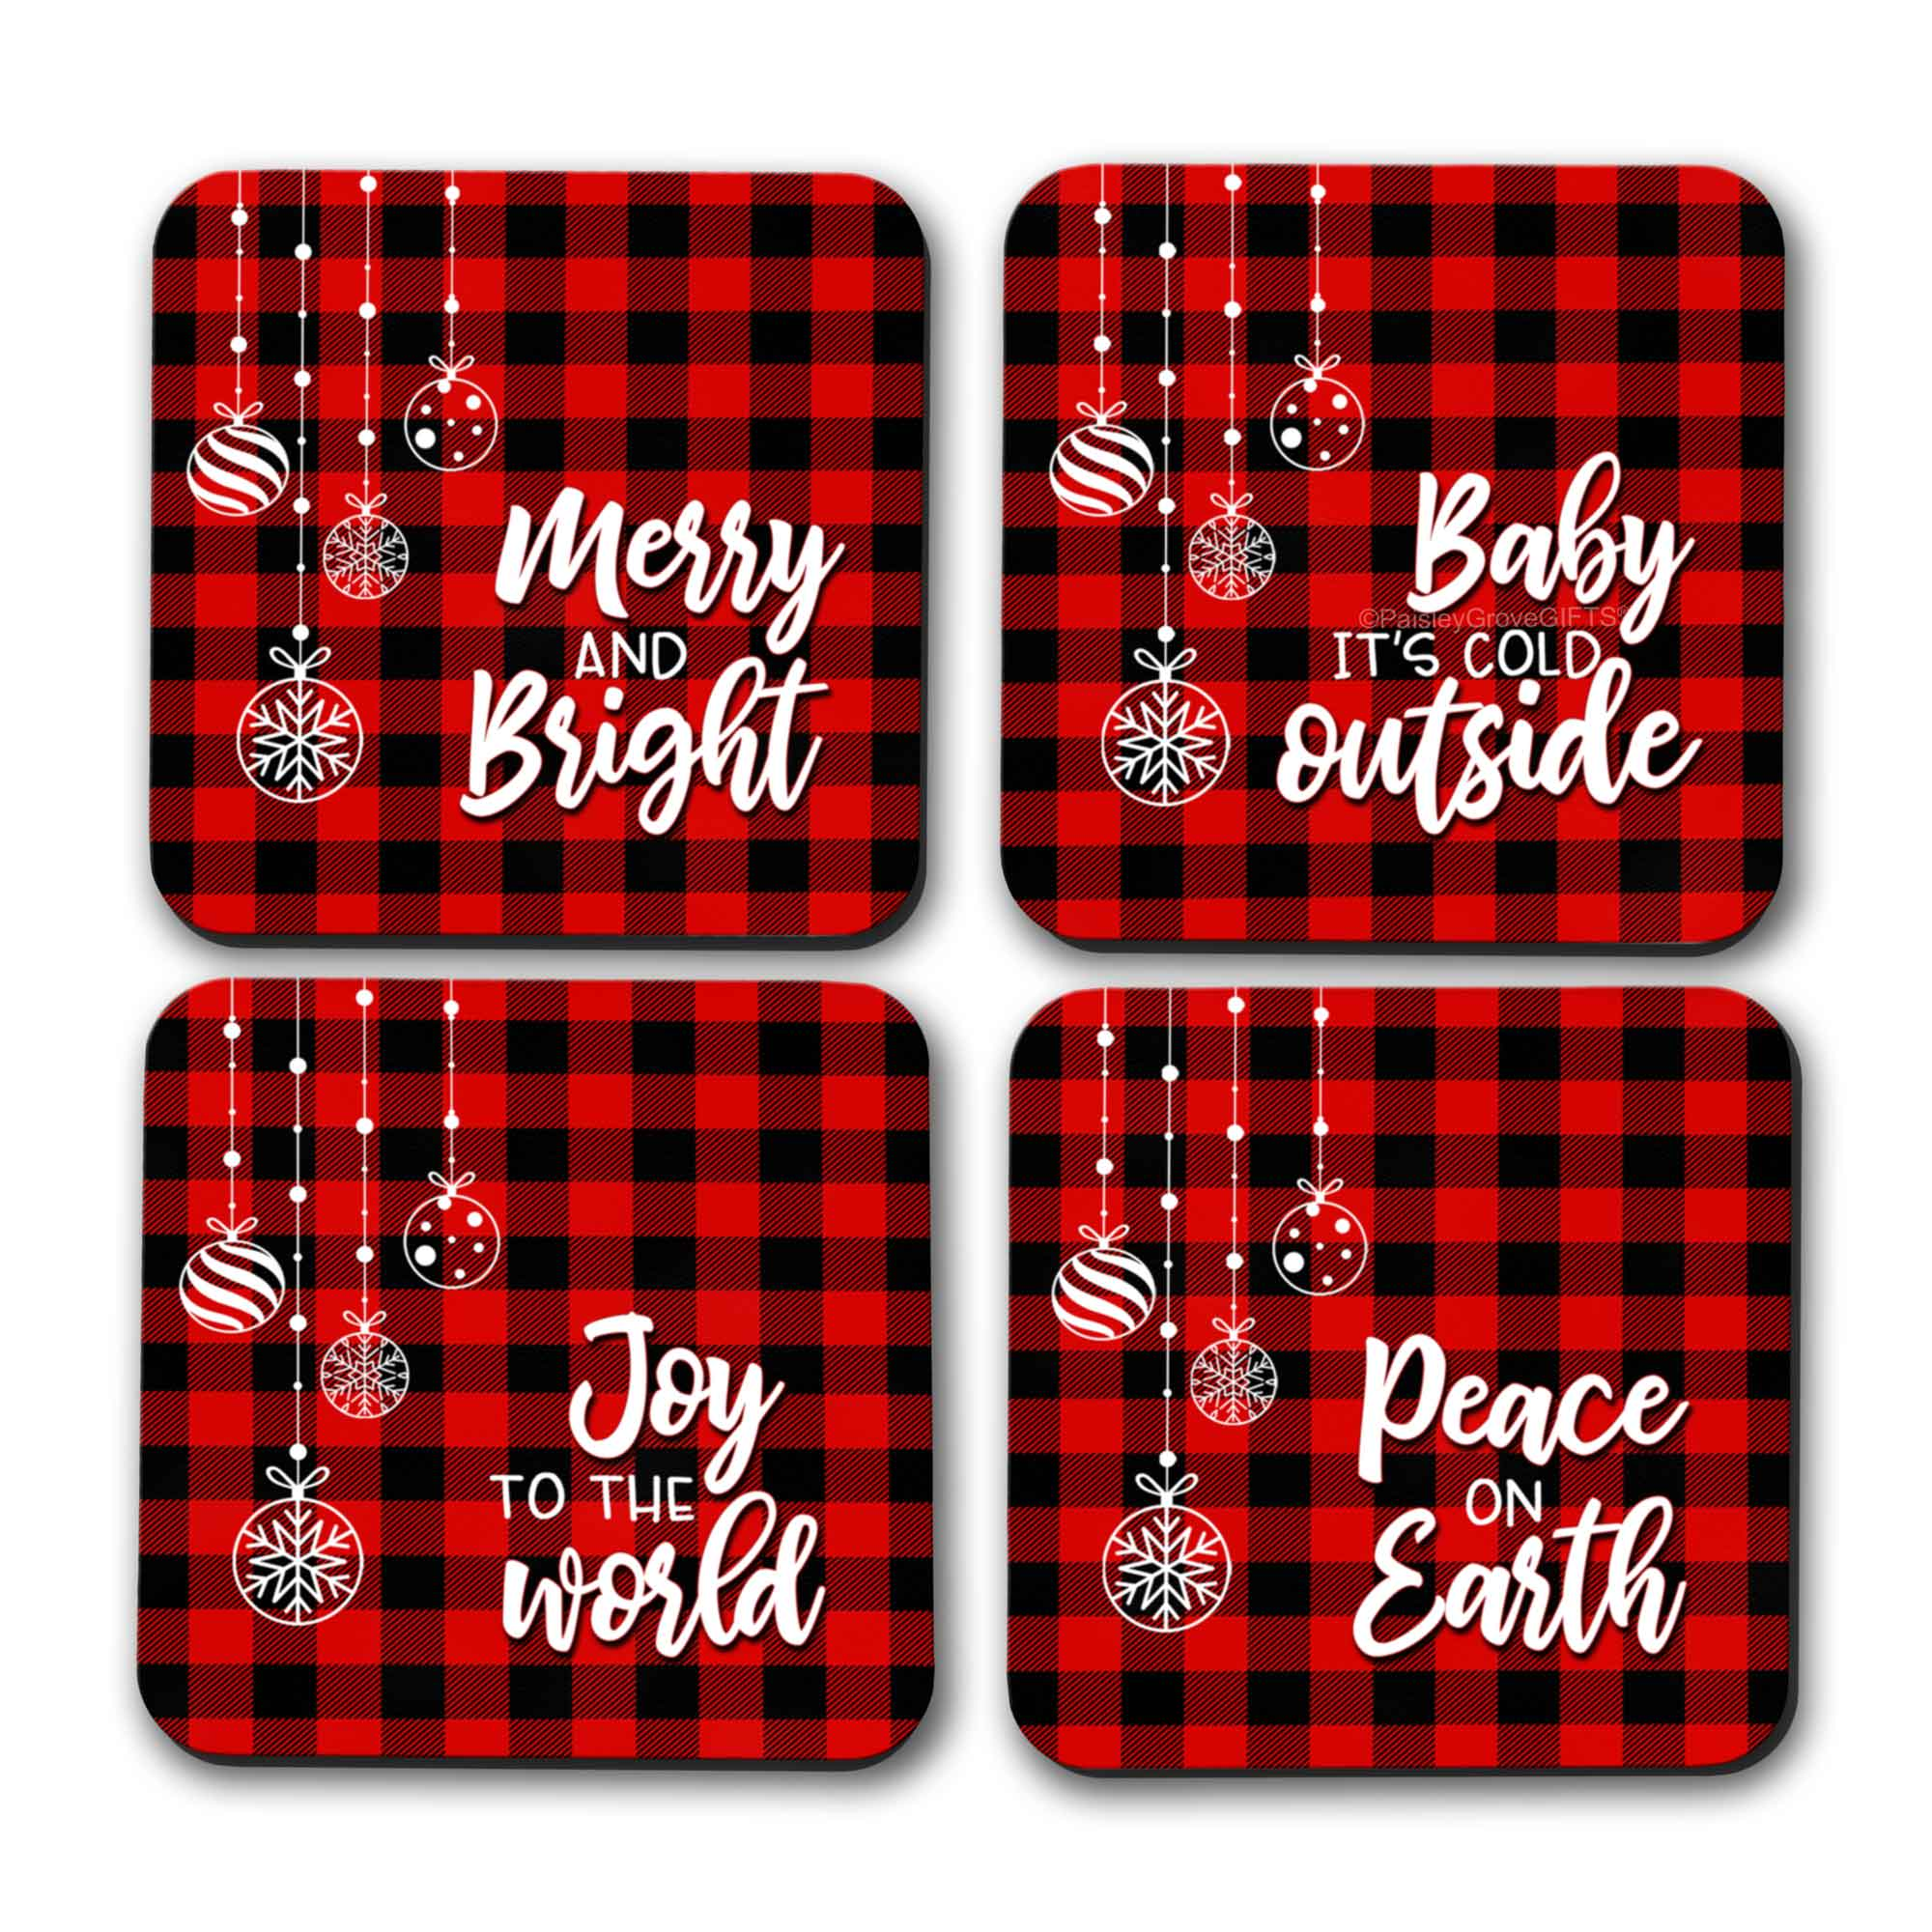 CopyrightPaisleyGroveGIFTS S704b Merry and Bright Holiday Coasters with Red and Black Buffalo Plaid Design